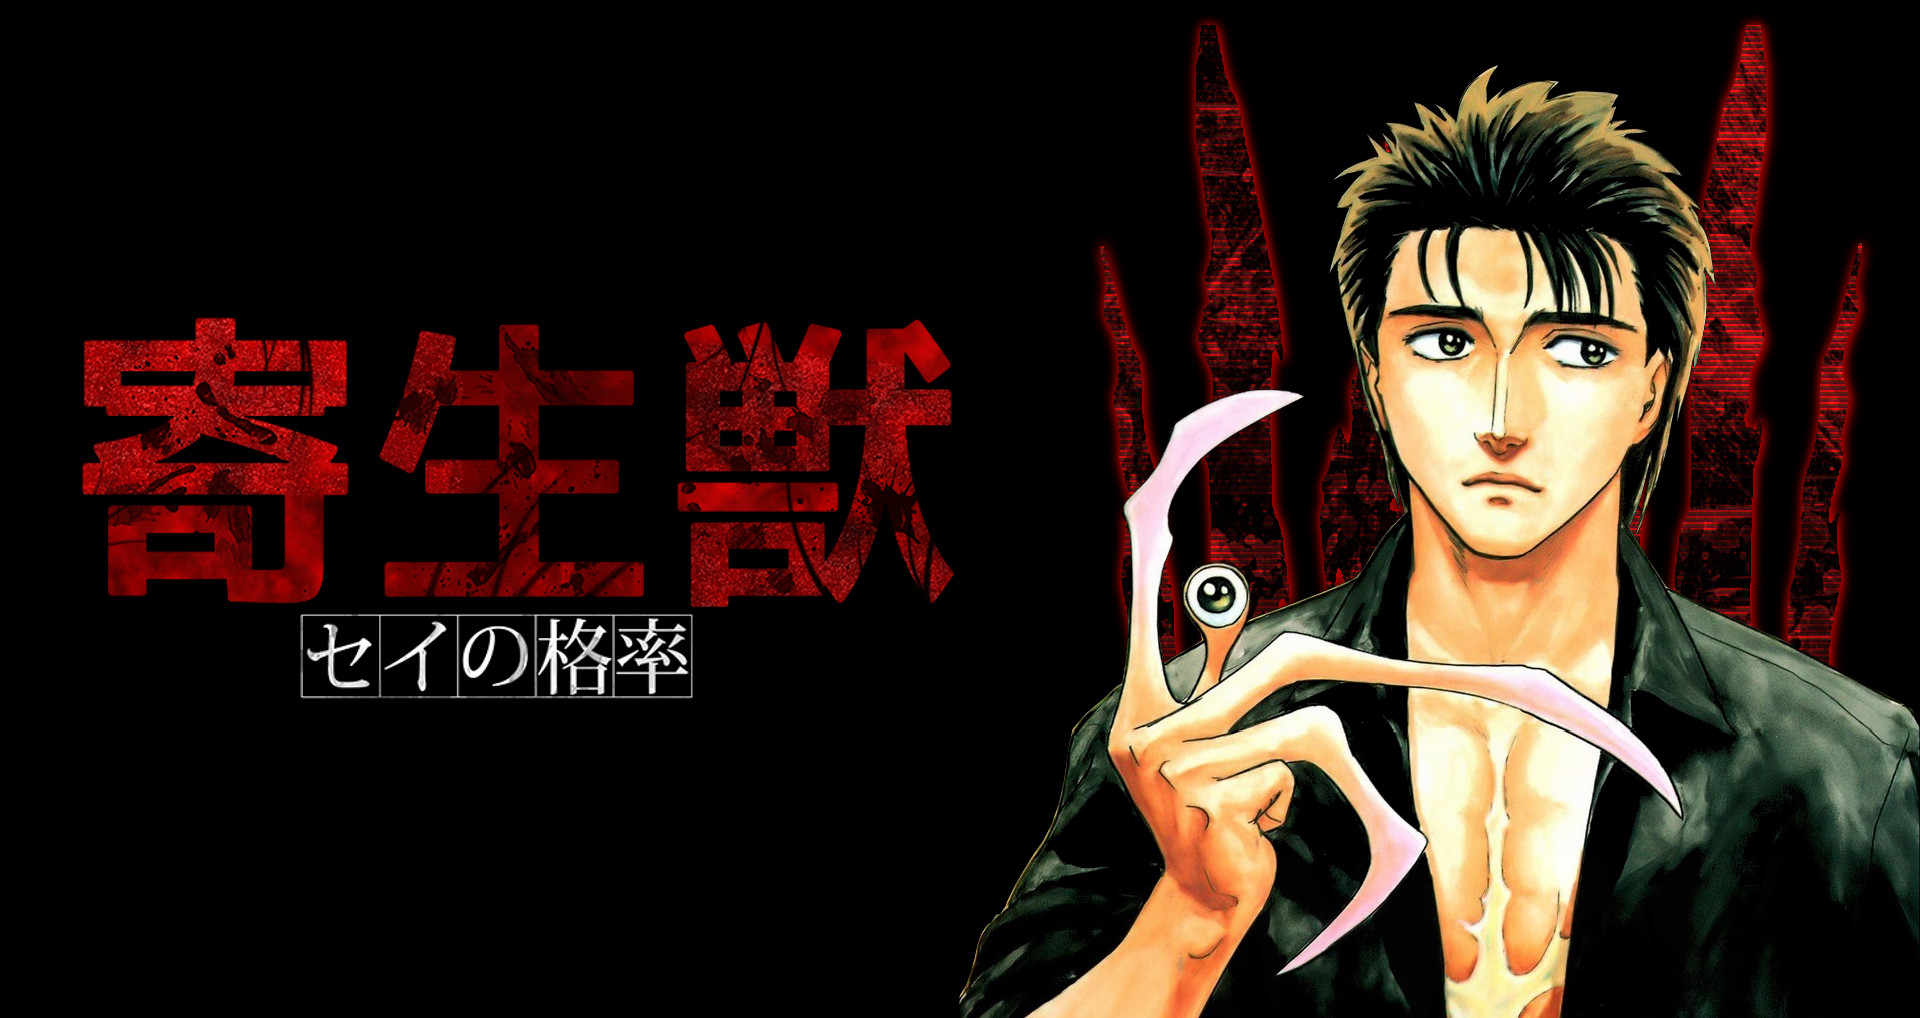 Parasyte the maxim wallpaper by stellathecat12 on deviantart parasyte the maxim wallpaper by stellathecat12 parasyte the maxim wallpaper by stellathecat12 voltagebd Image collections